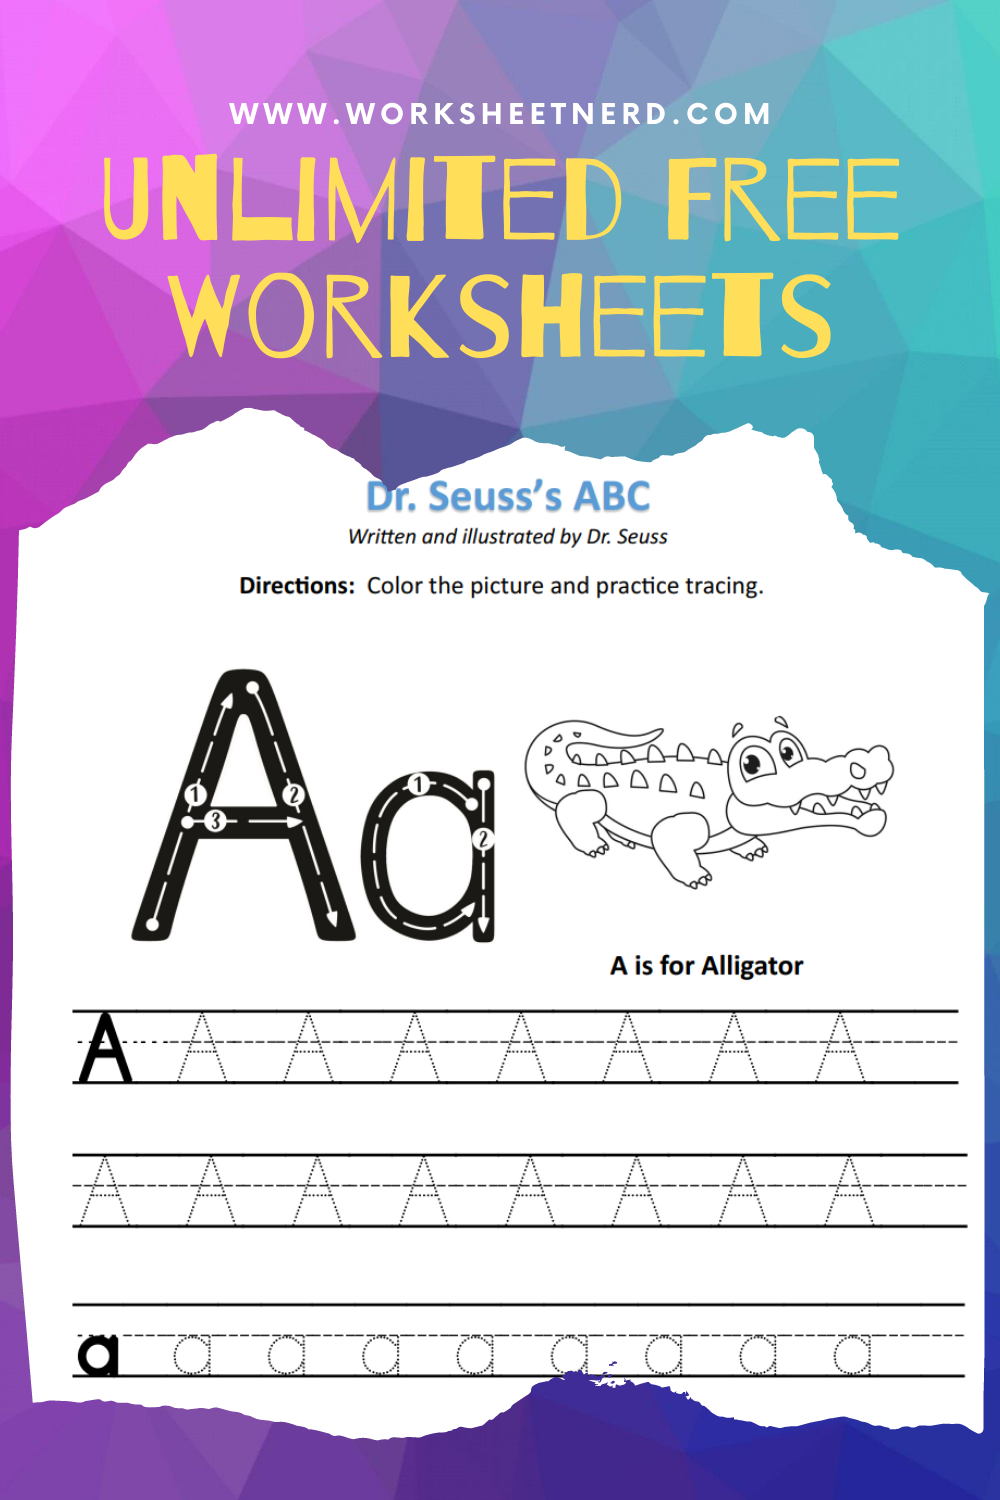 Free Worksheets For Kids Dr Seuss S Abc Kindergarten First Grade Level Kindergarten Worksheets Kindergarten Abc Kindergarten Reading Worksheets [ 1500 x 1000 Pixel ]